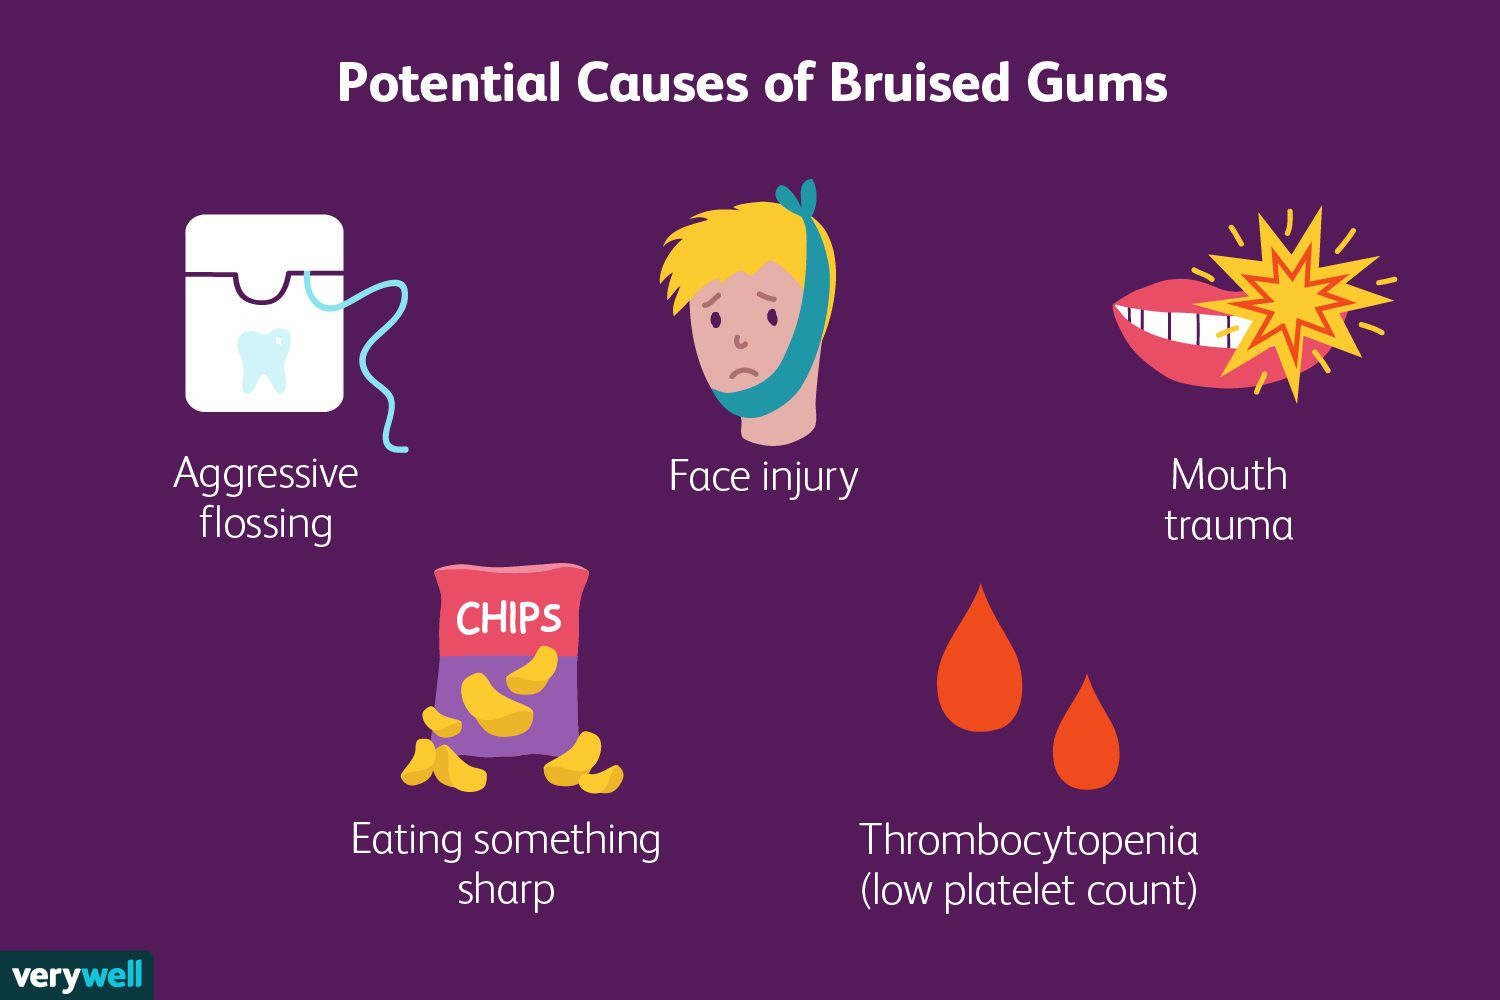 Potential Causes of Bruised Gums